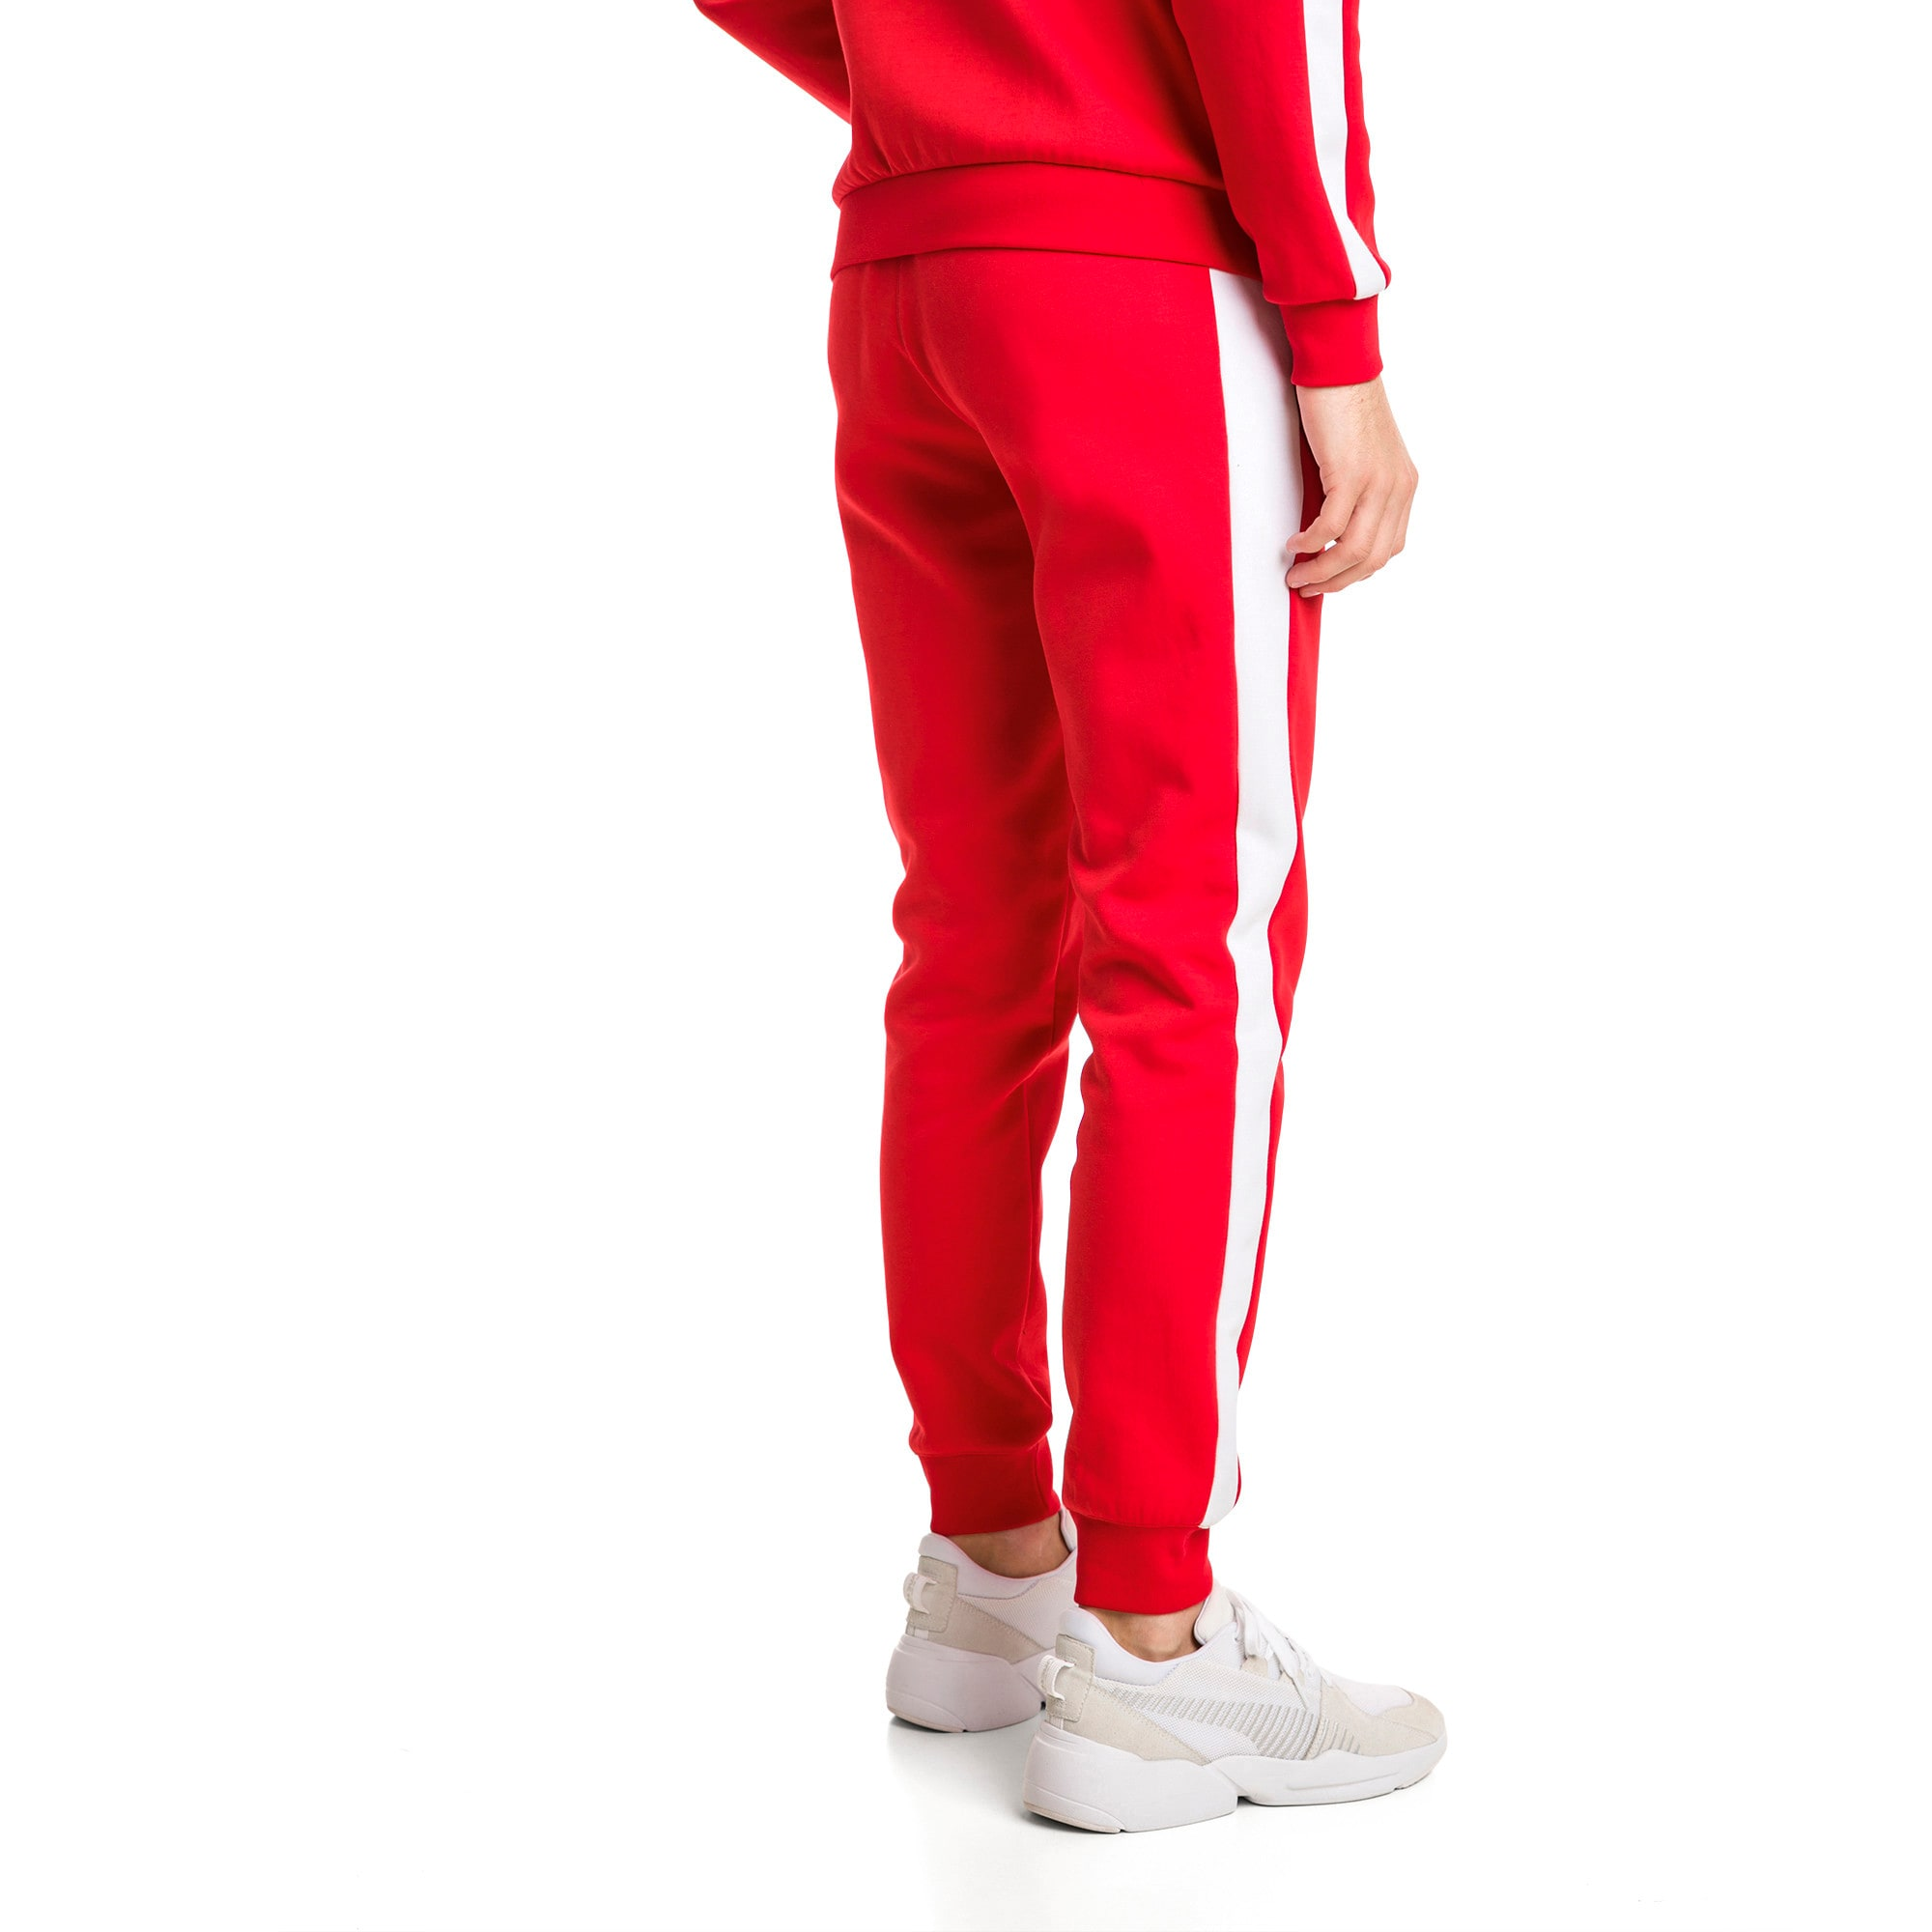 Thumbnail 3 of Archive Iconic T7 Double Knit Men's Track Pants, High Risk Red, medium